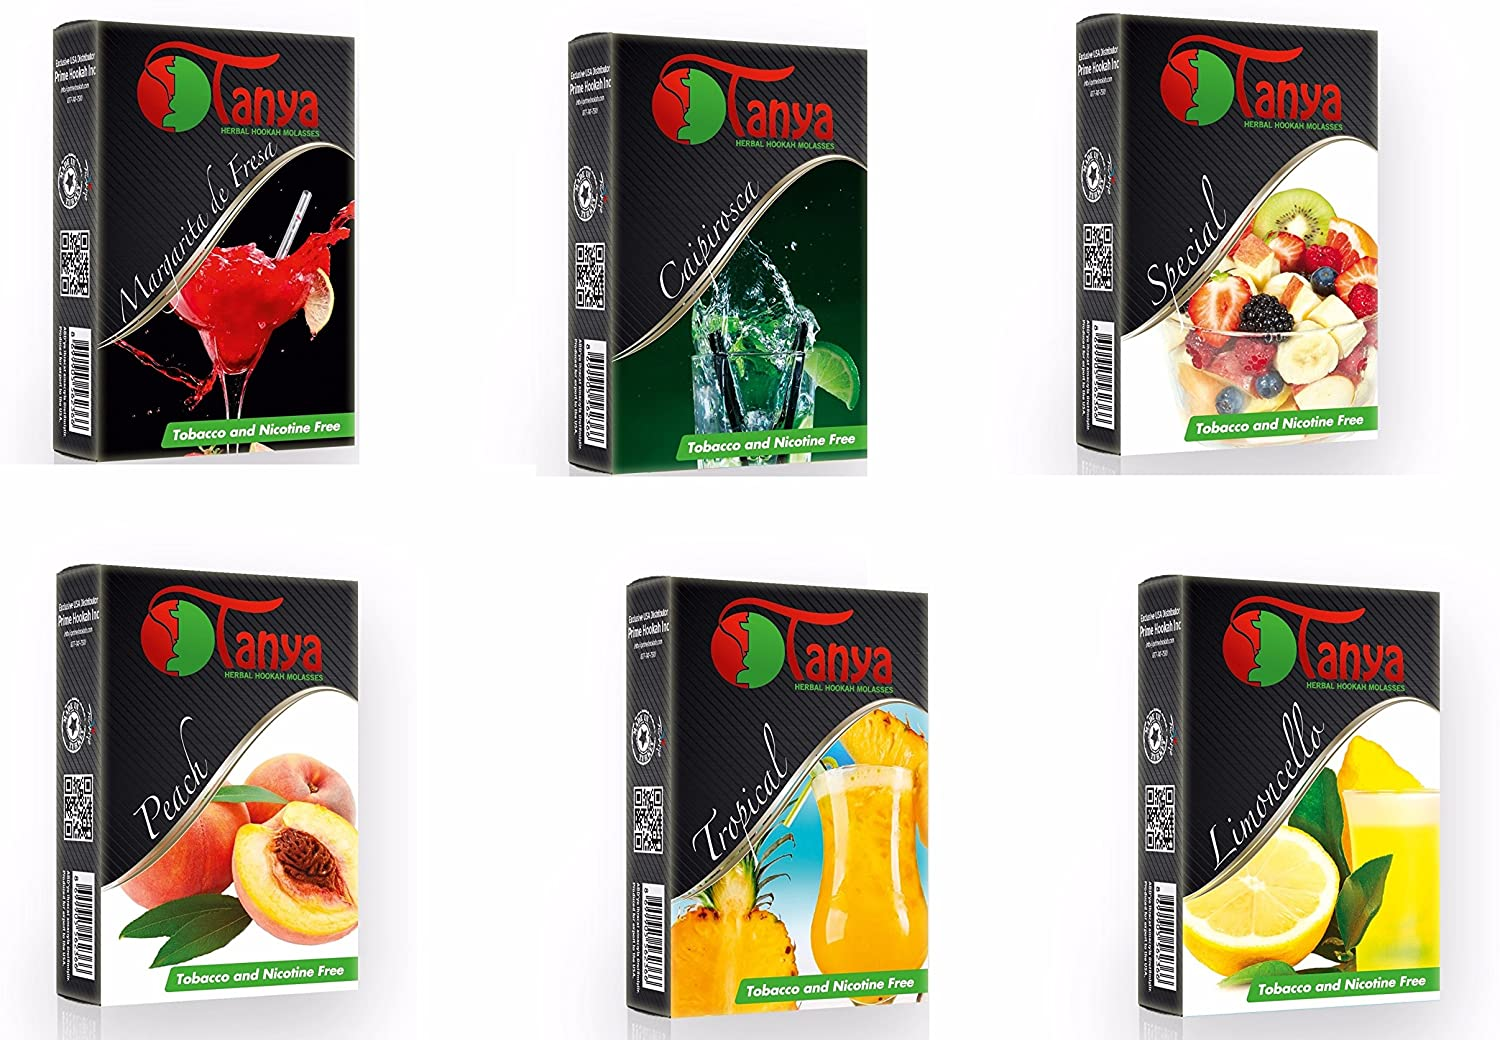 Tanya tobacco free packages